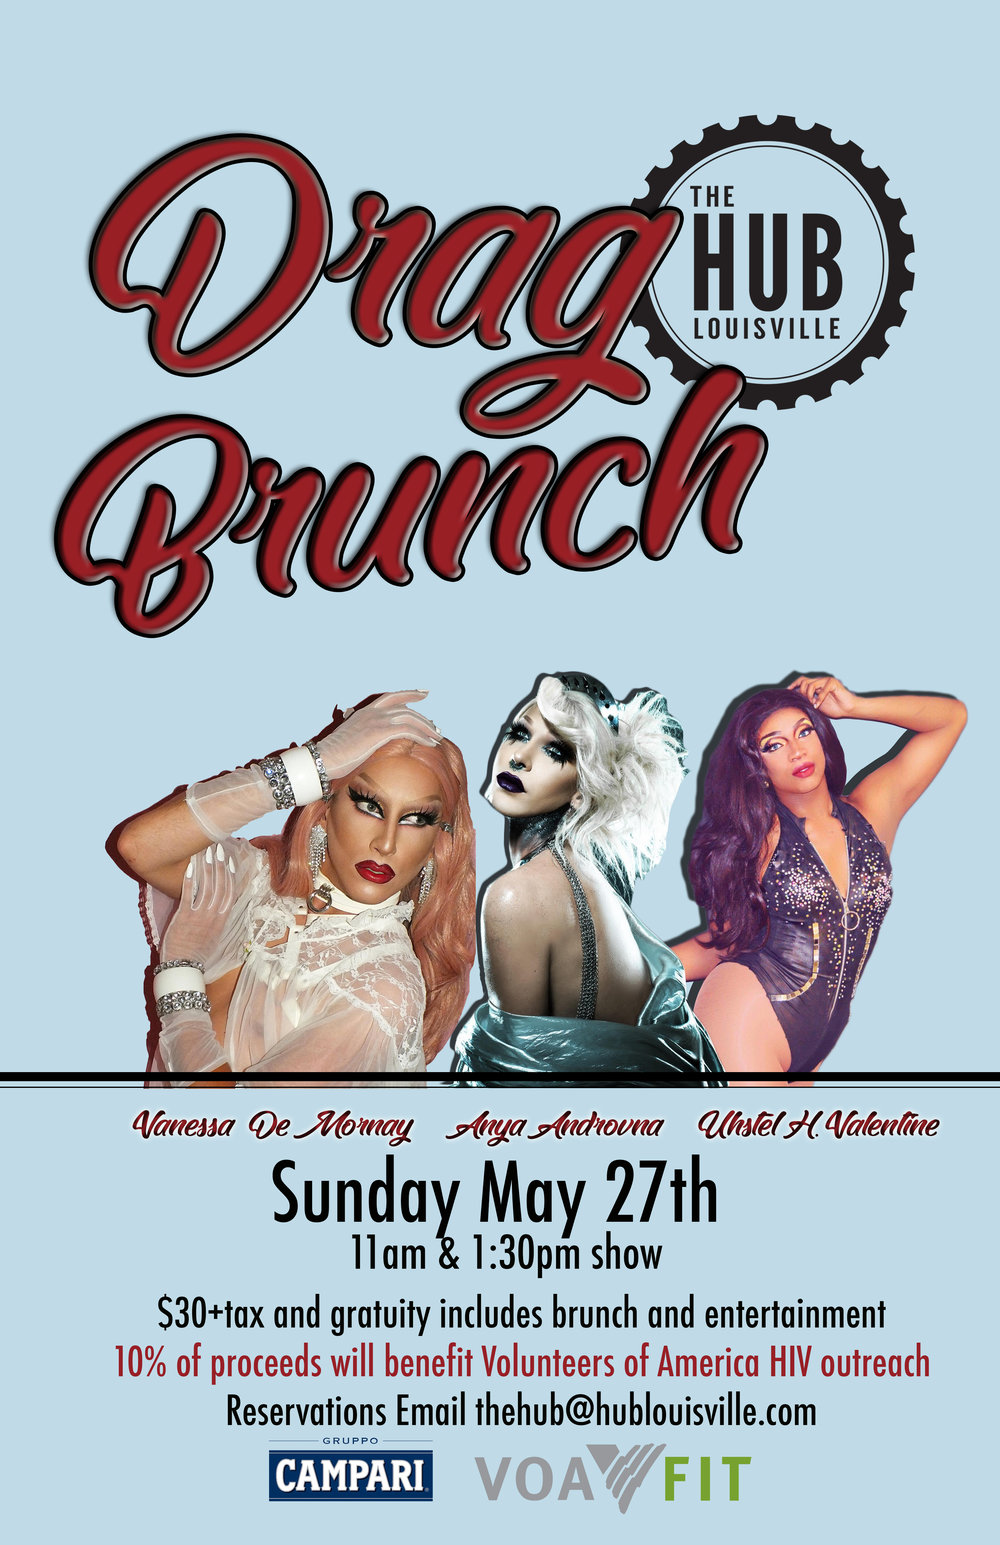 dragbrunchmay27_flyer.jpg